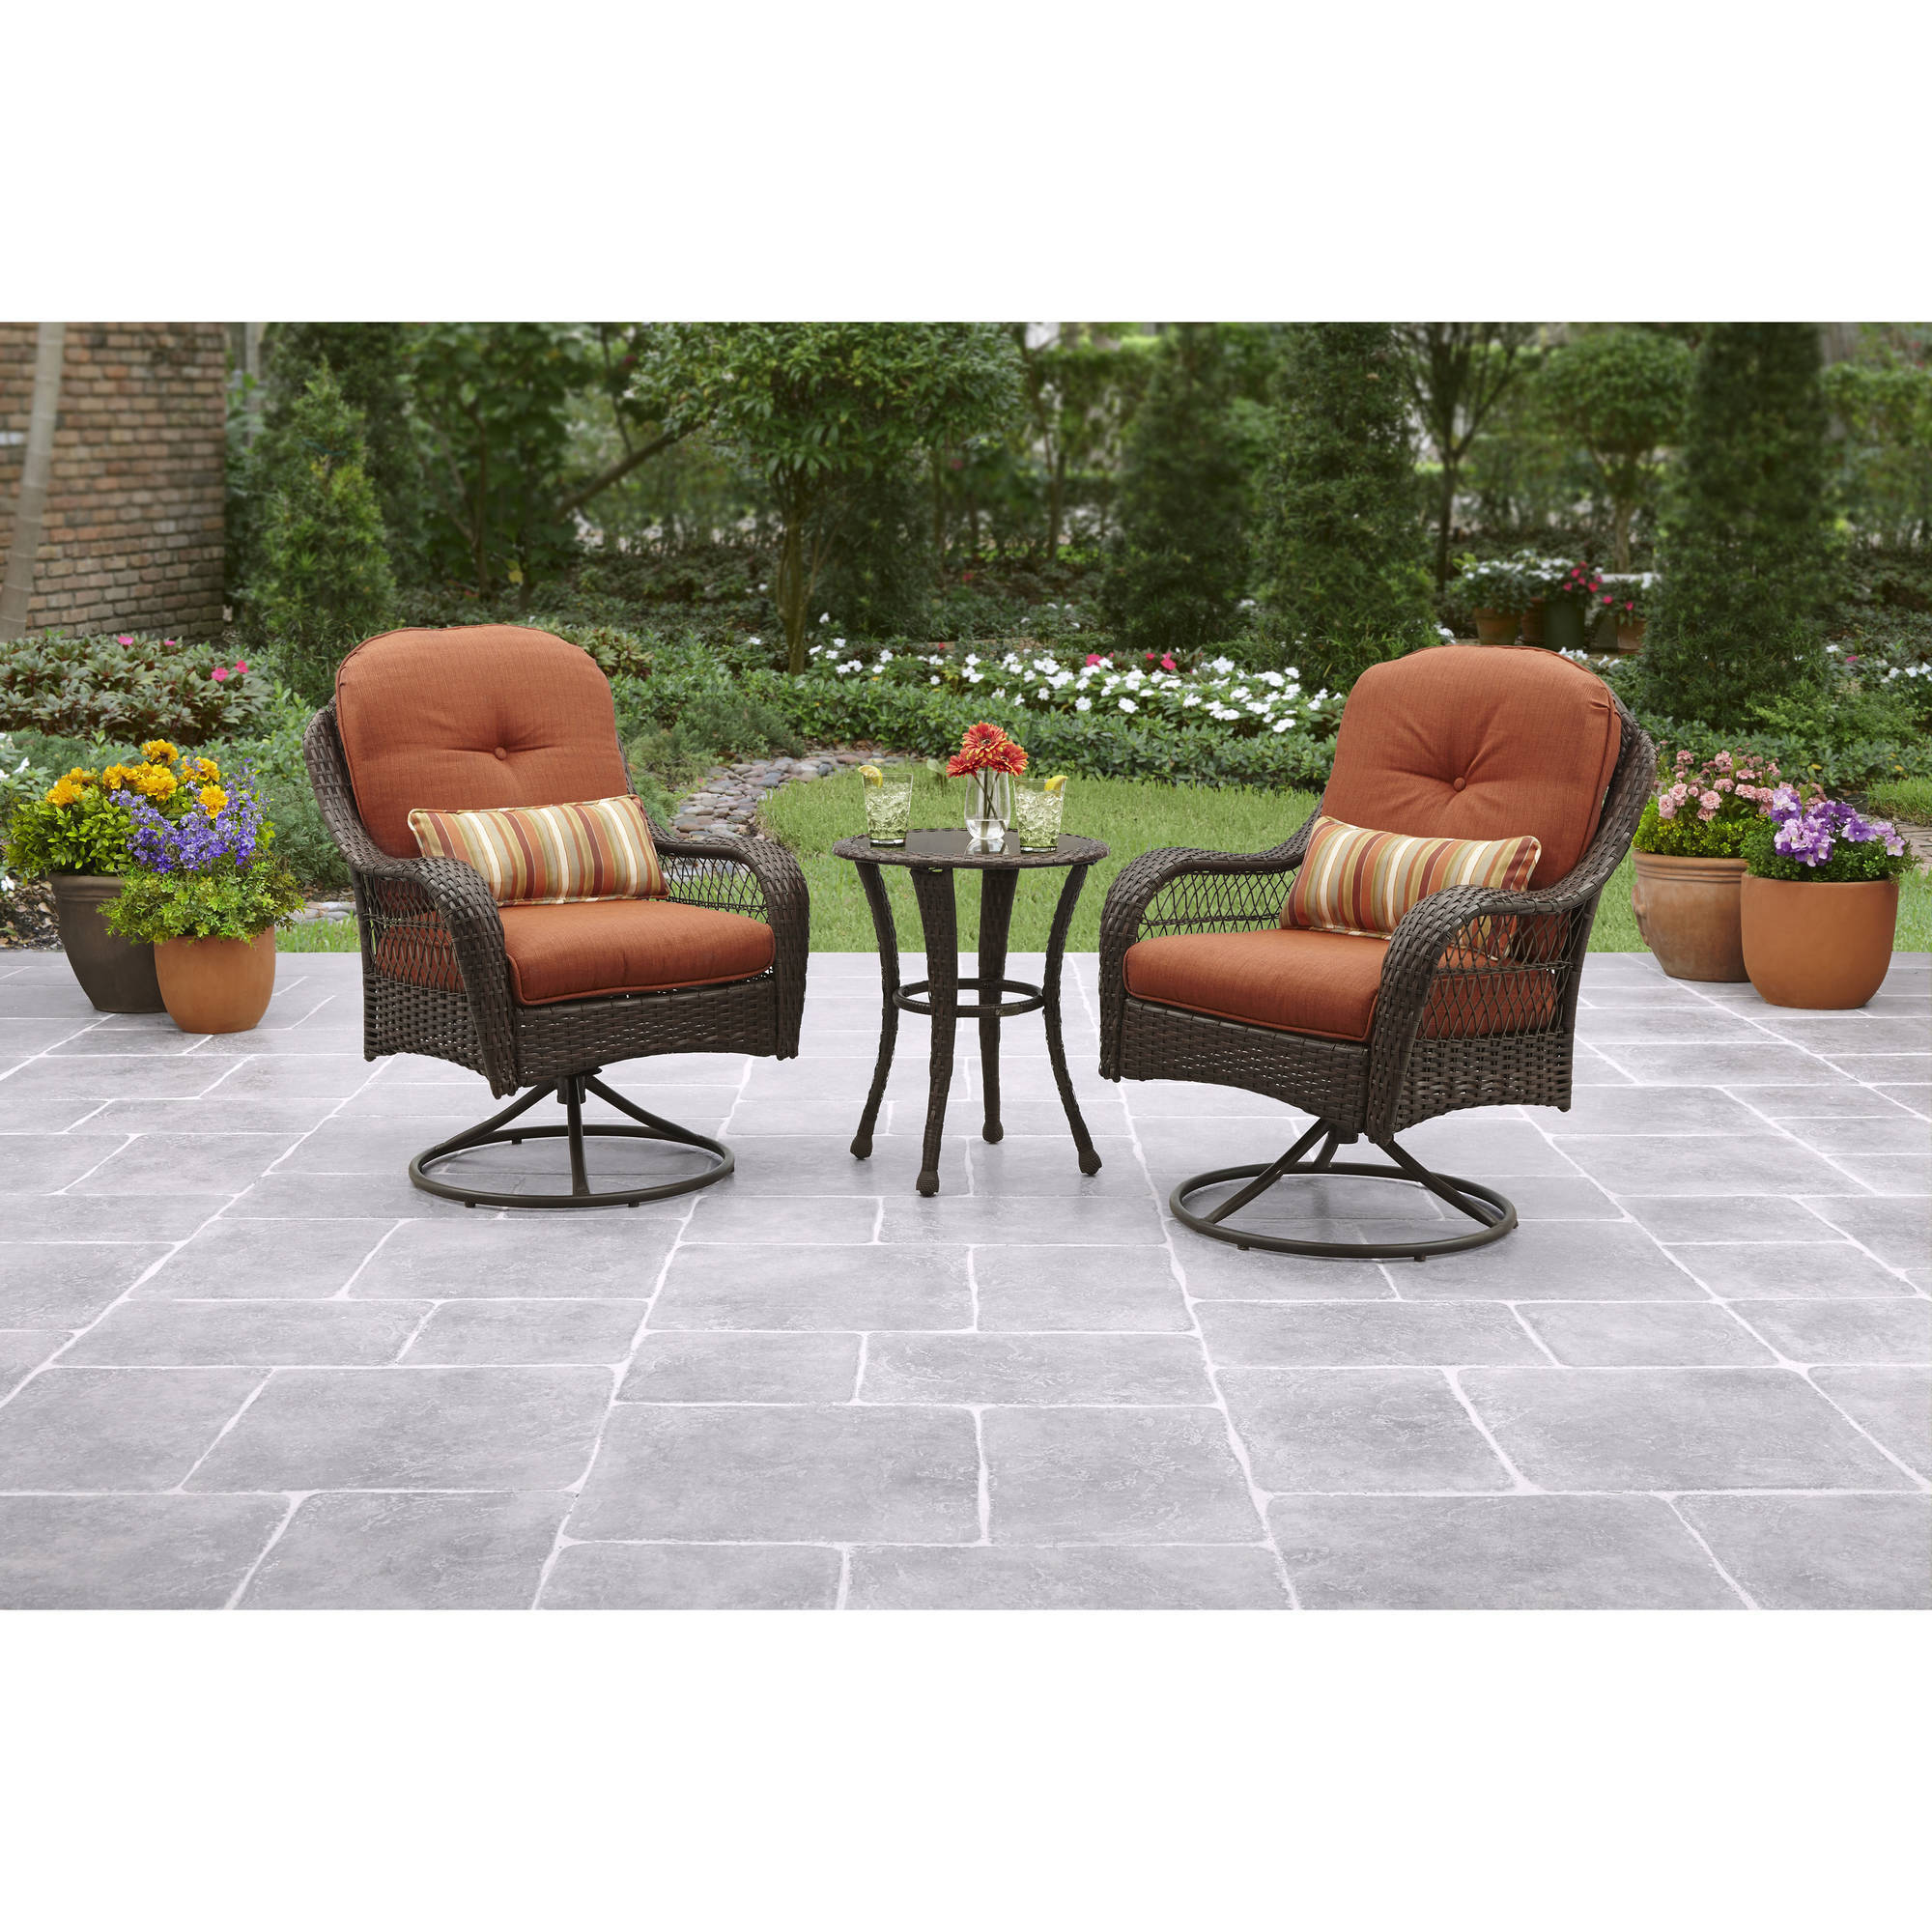 wicker patio chair set of 2 fishing clearance better homes and gardens azalea ridge 3 piece outdoor bistro details about seats